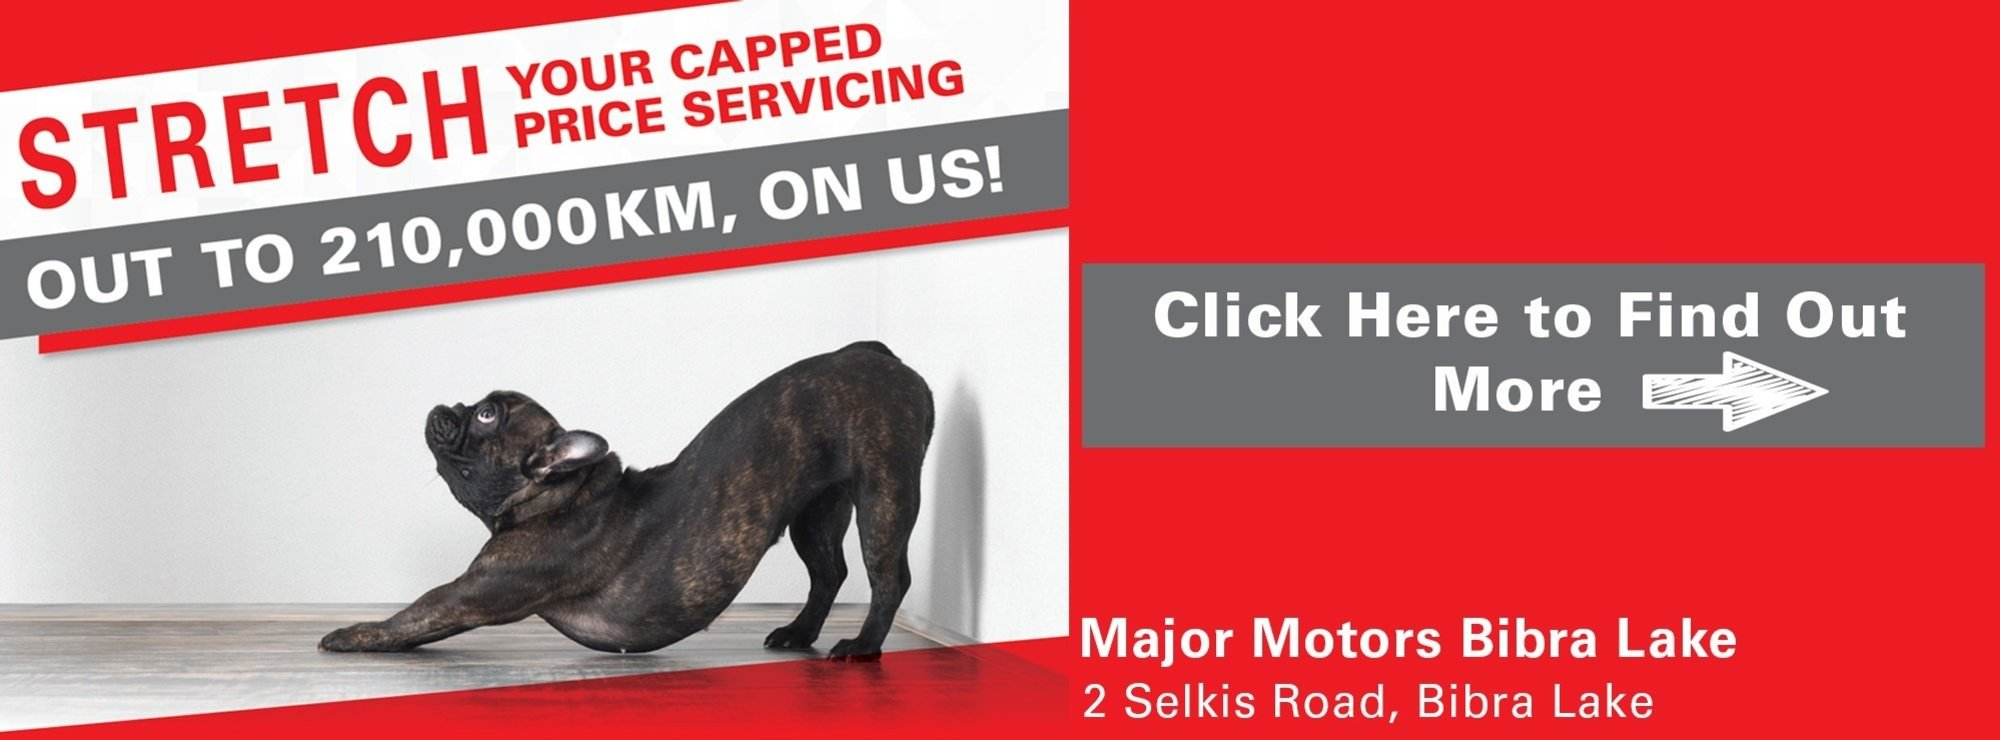 Capped Price Servicing Special